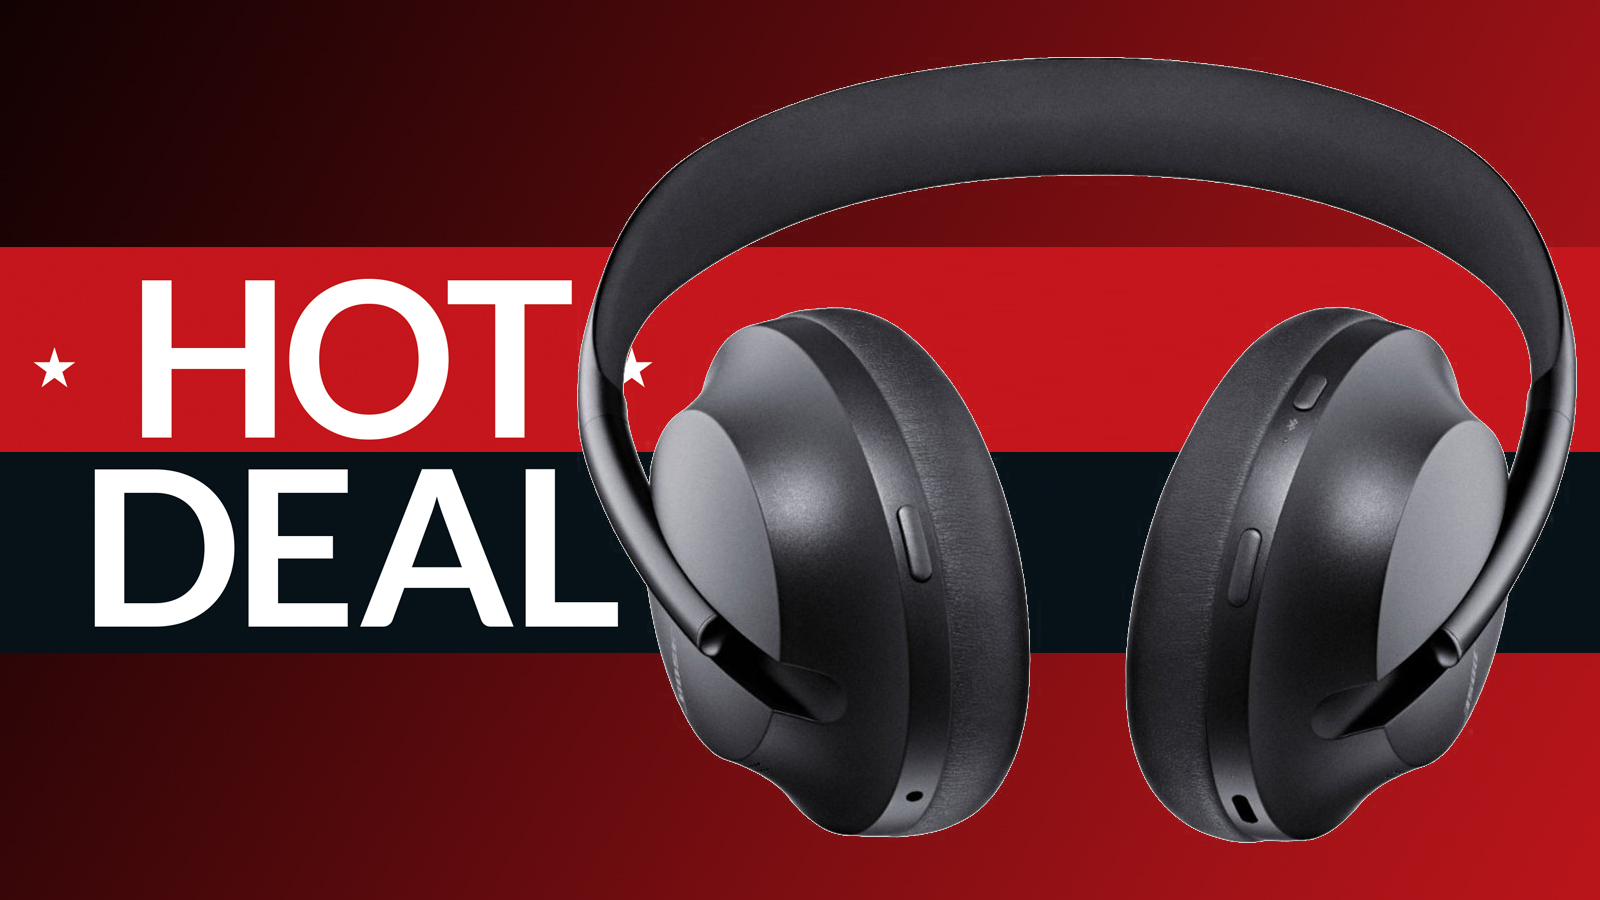 Cheap noise cancelling headphones deal: Up to $100 off a